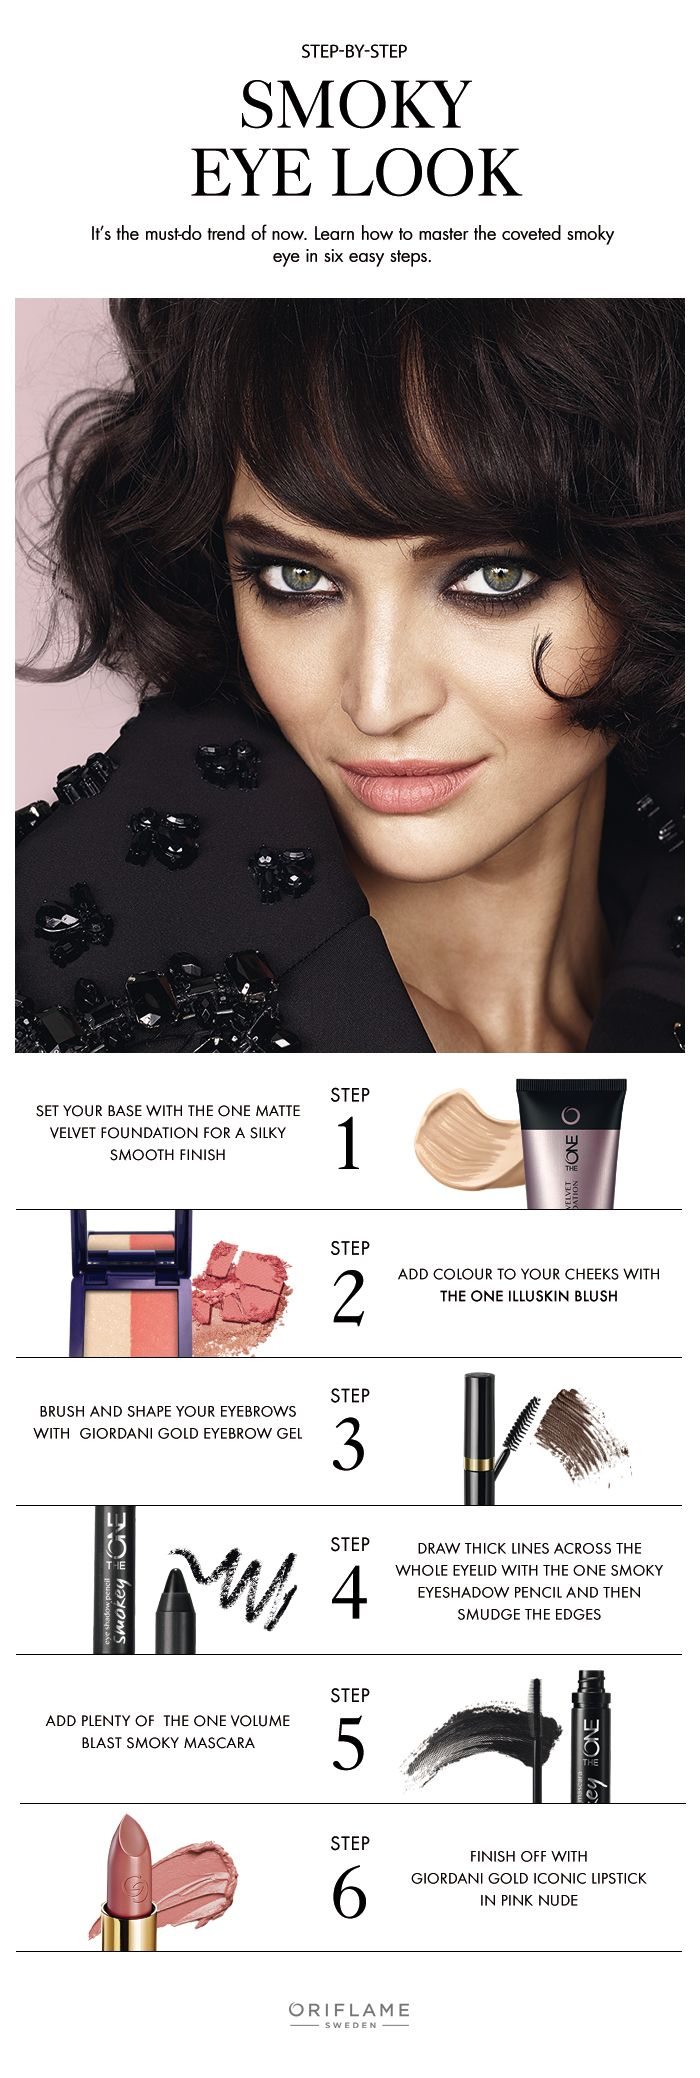 It's hot now and forever will be. The smoky eye look is like the LBD, a timeless essential every woman needs in her life.